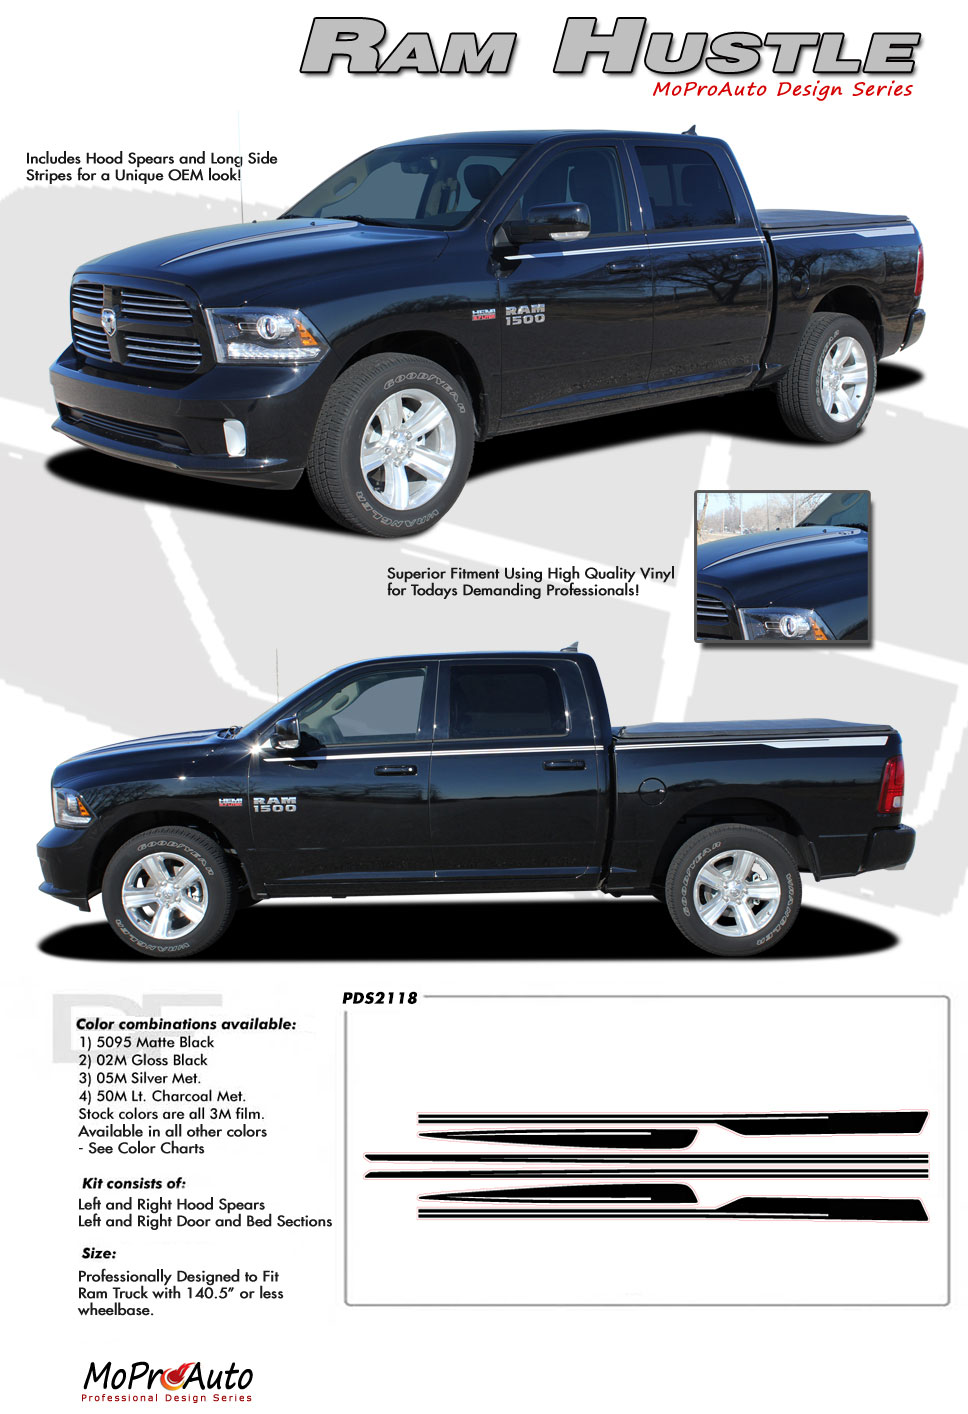 DODGE RAM HUSTLE OEM FACTORY STYLE MoProAuto Pro Design Series Vinyl Graphics and Decals Kit